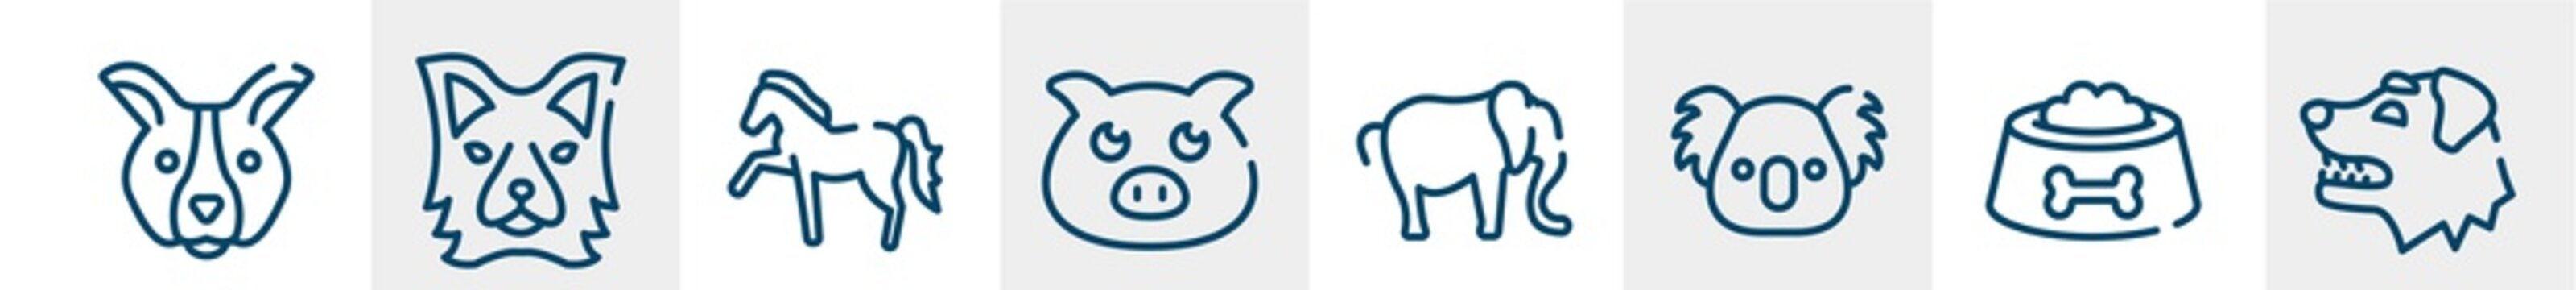 woof woof line icons such as dog face, border collie head, horse with leg up, farm pig, elephant alone, border collie dog head outline vector sign. symbol, logo illustration. linear style icons set.